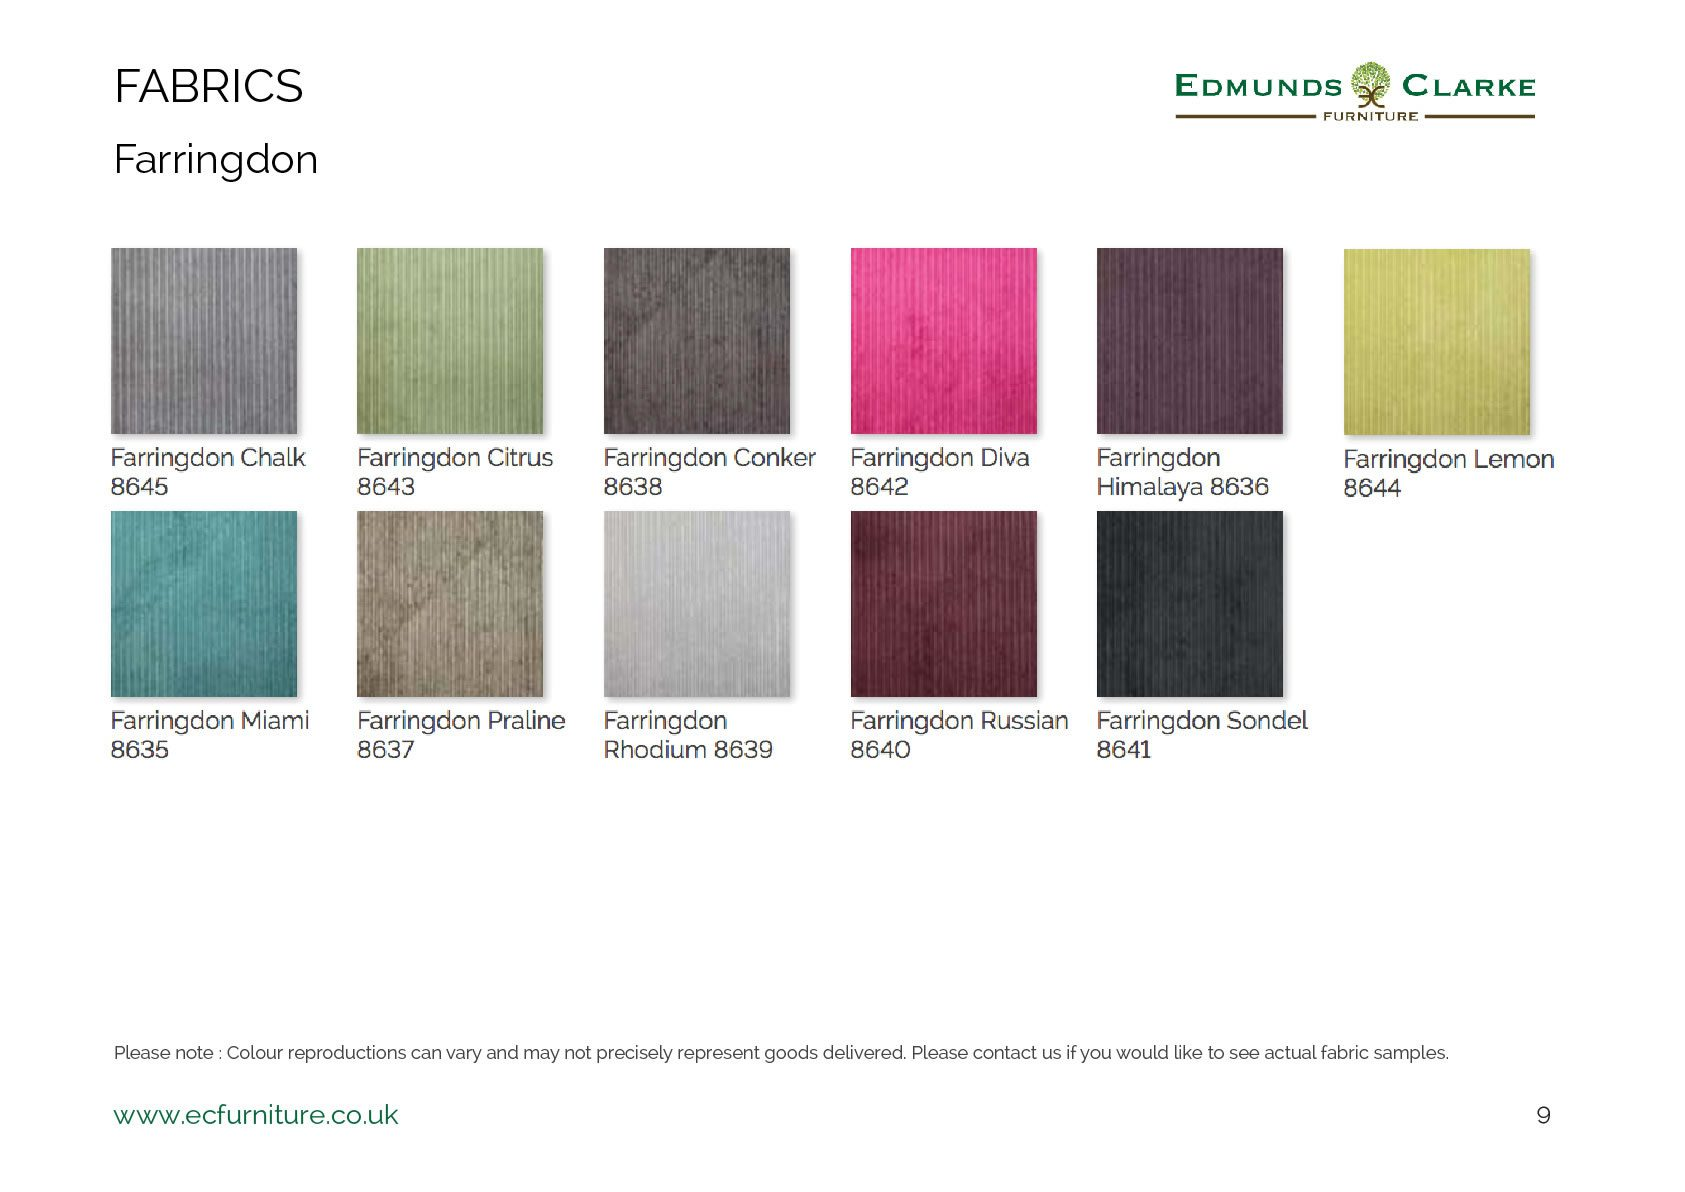 Farringdon fabric swatches for our range of Edmunds dining chairs